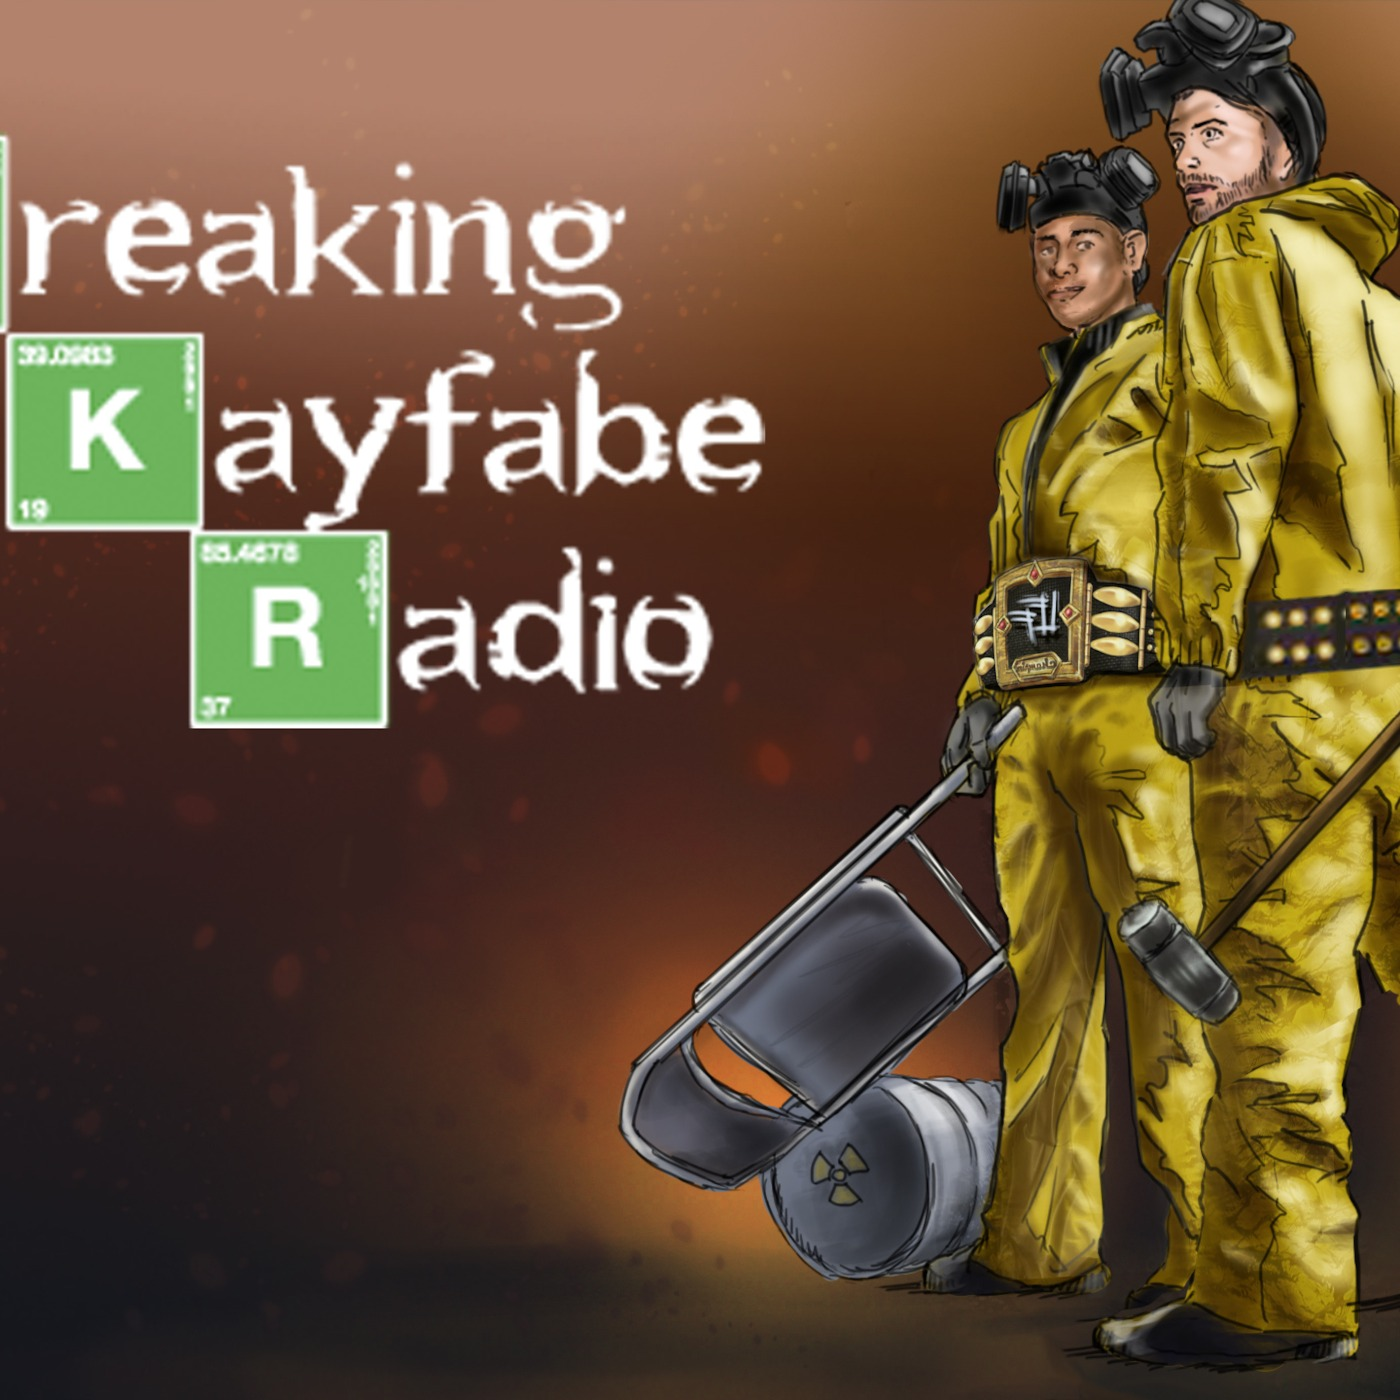 Breaking Kayfabe Radio